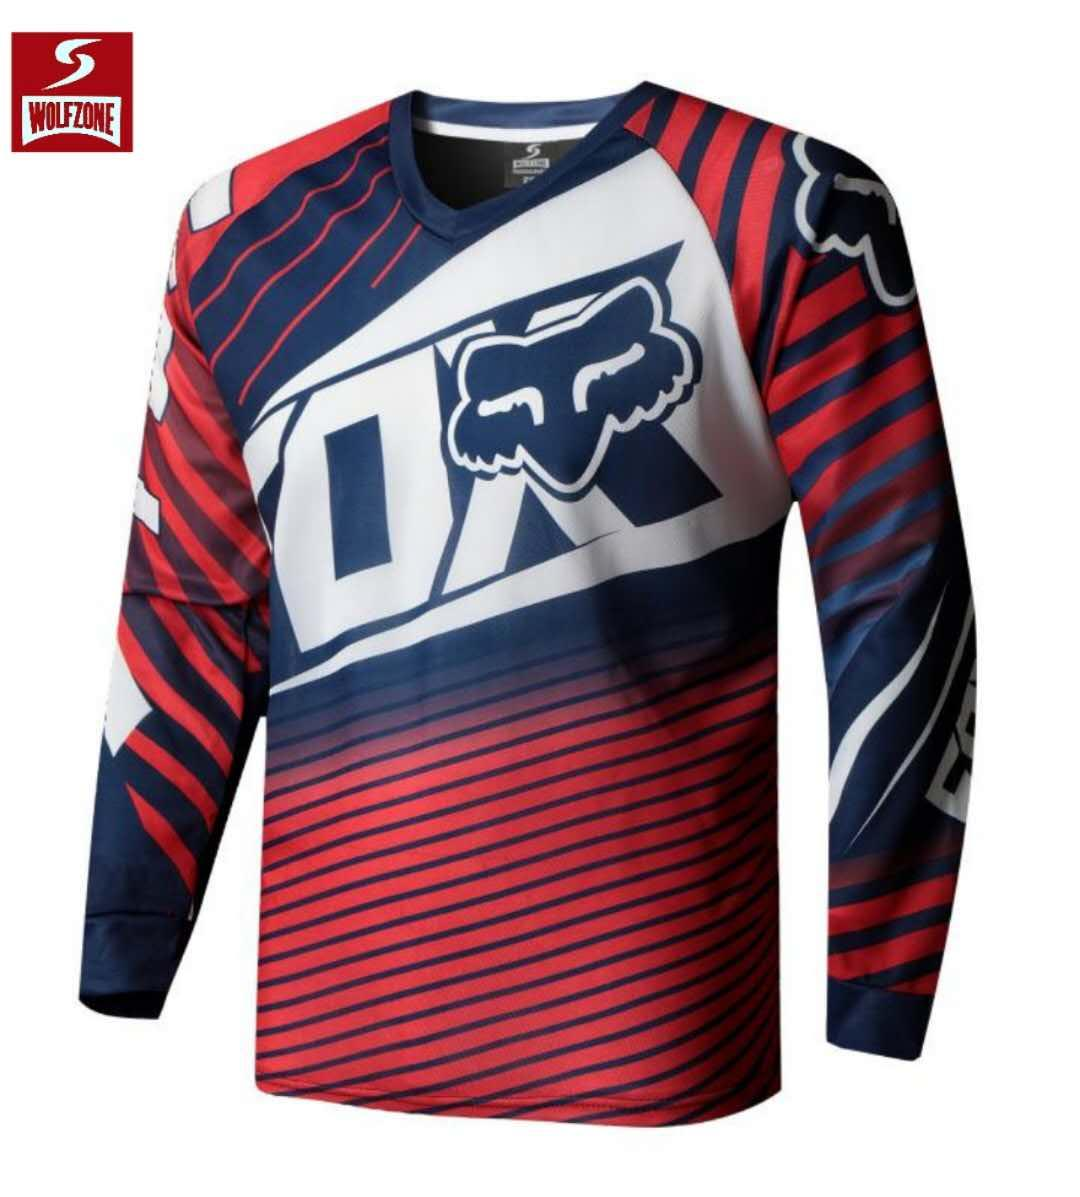 4f1358e6d Wolf Zone Spandex Fox Longsleeve Men s Sportswear Quick DryFortress Cycling  Mountain Bike Motocross Motorcycle MTB